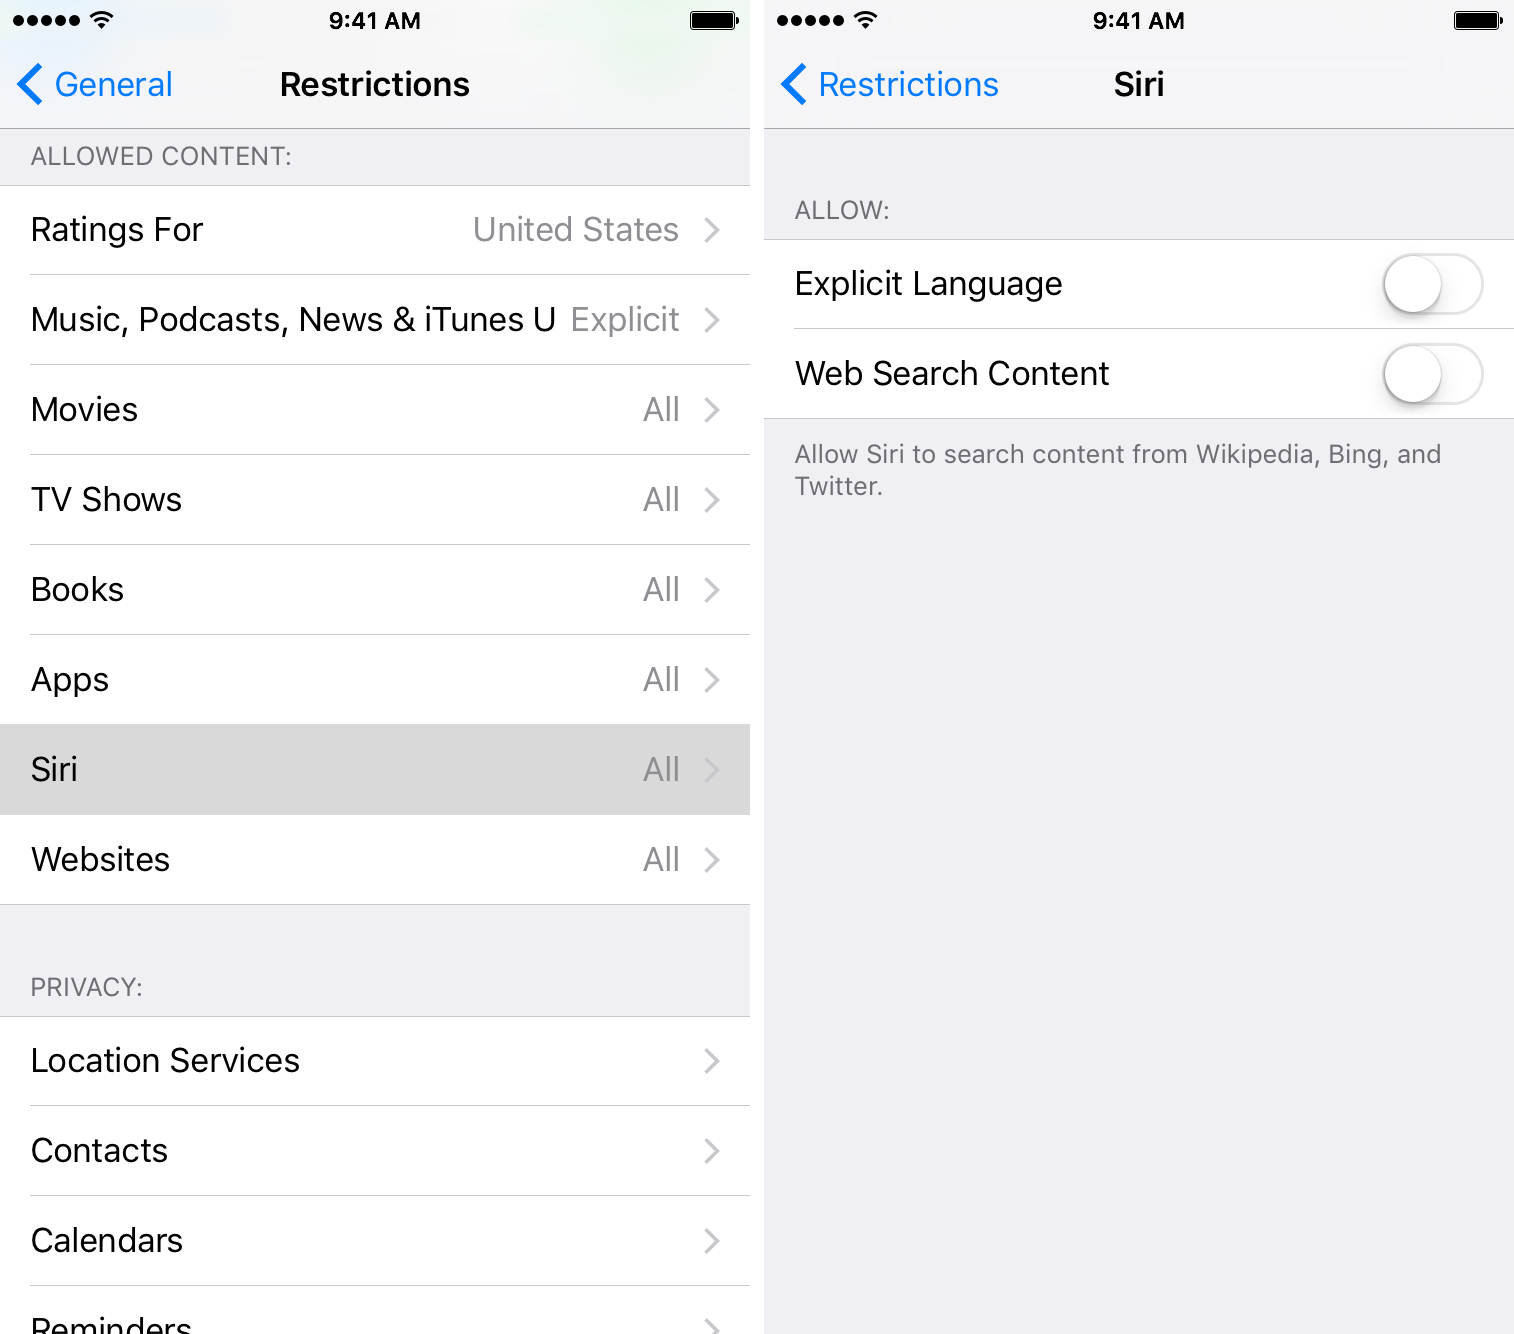 Disable mature language for Siri